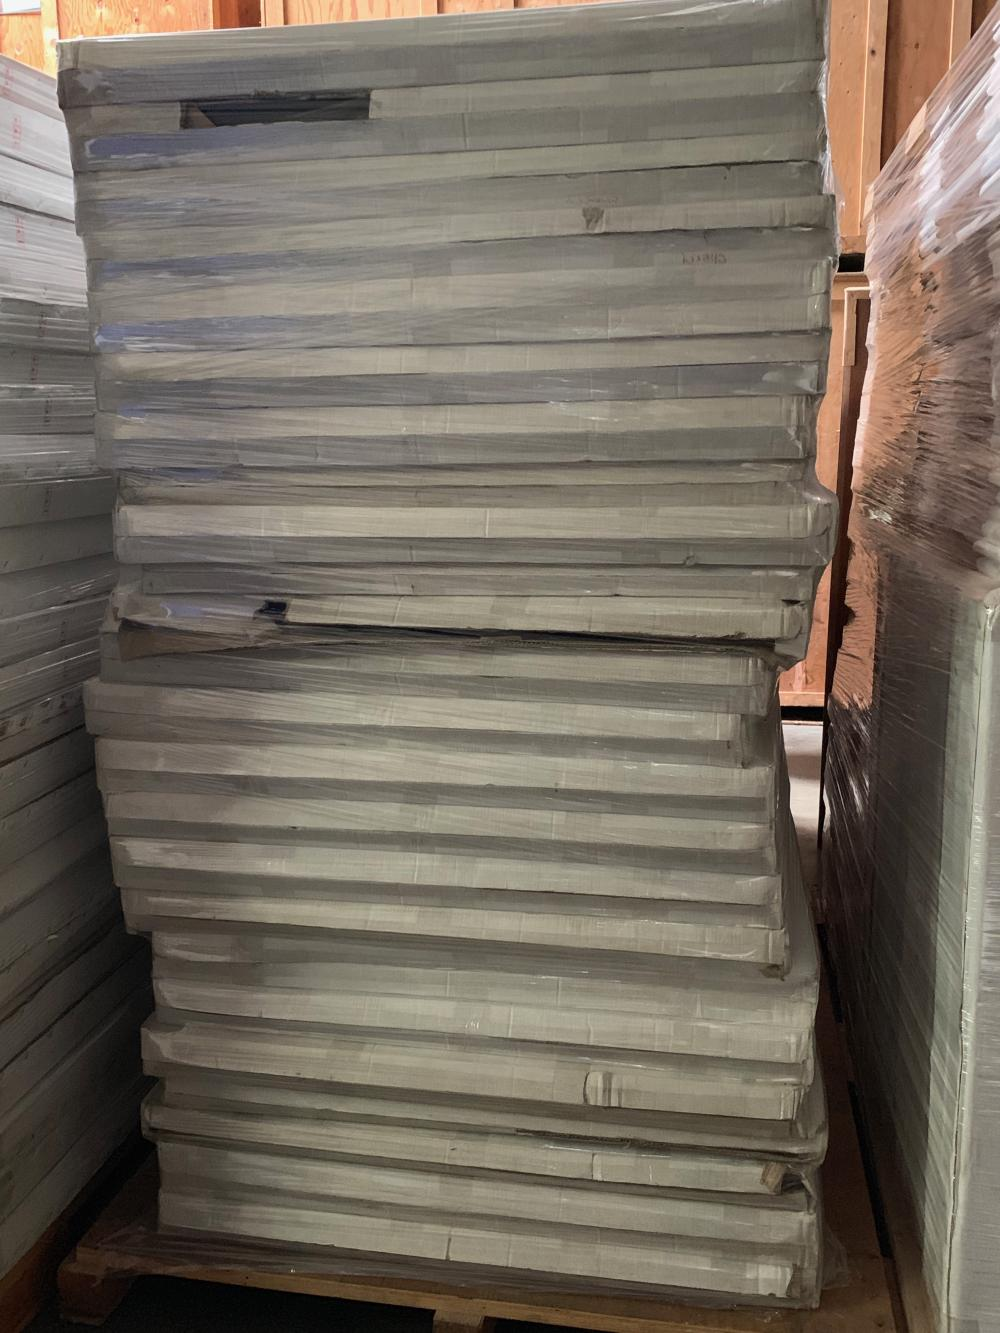 Pallet of Picture Frames  8